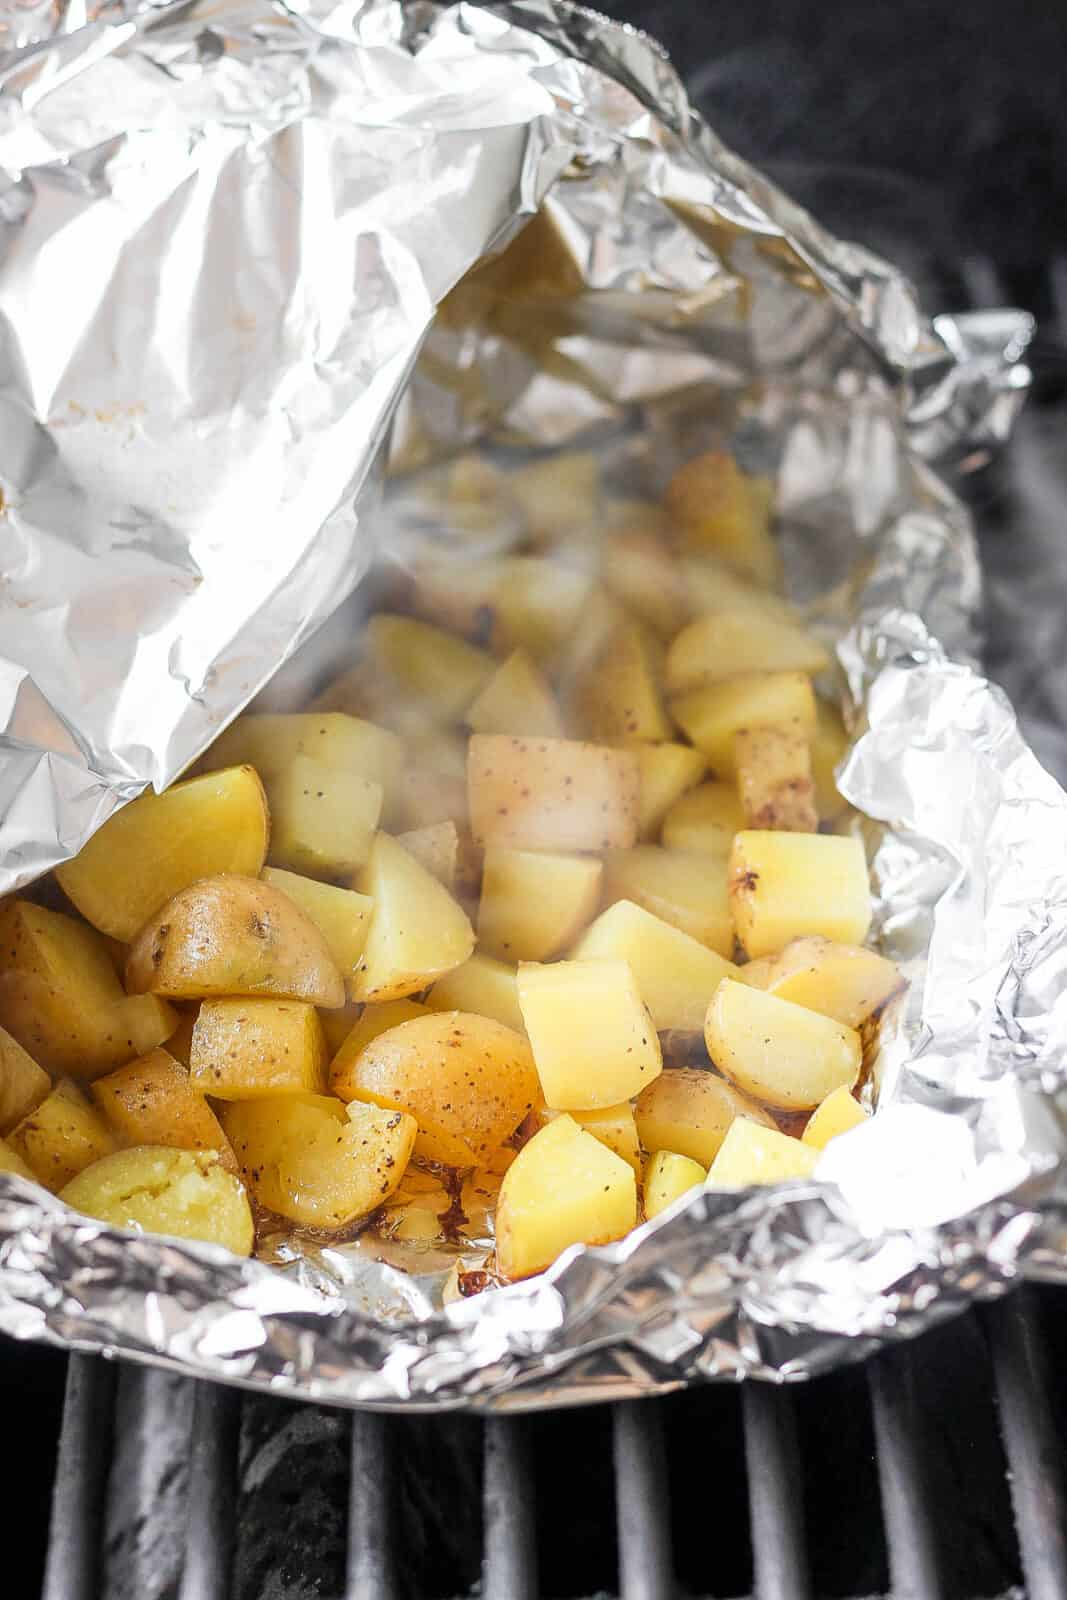 Grilled potatoes in a foil boat on the grill with one corner slightly open to see the steam.